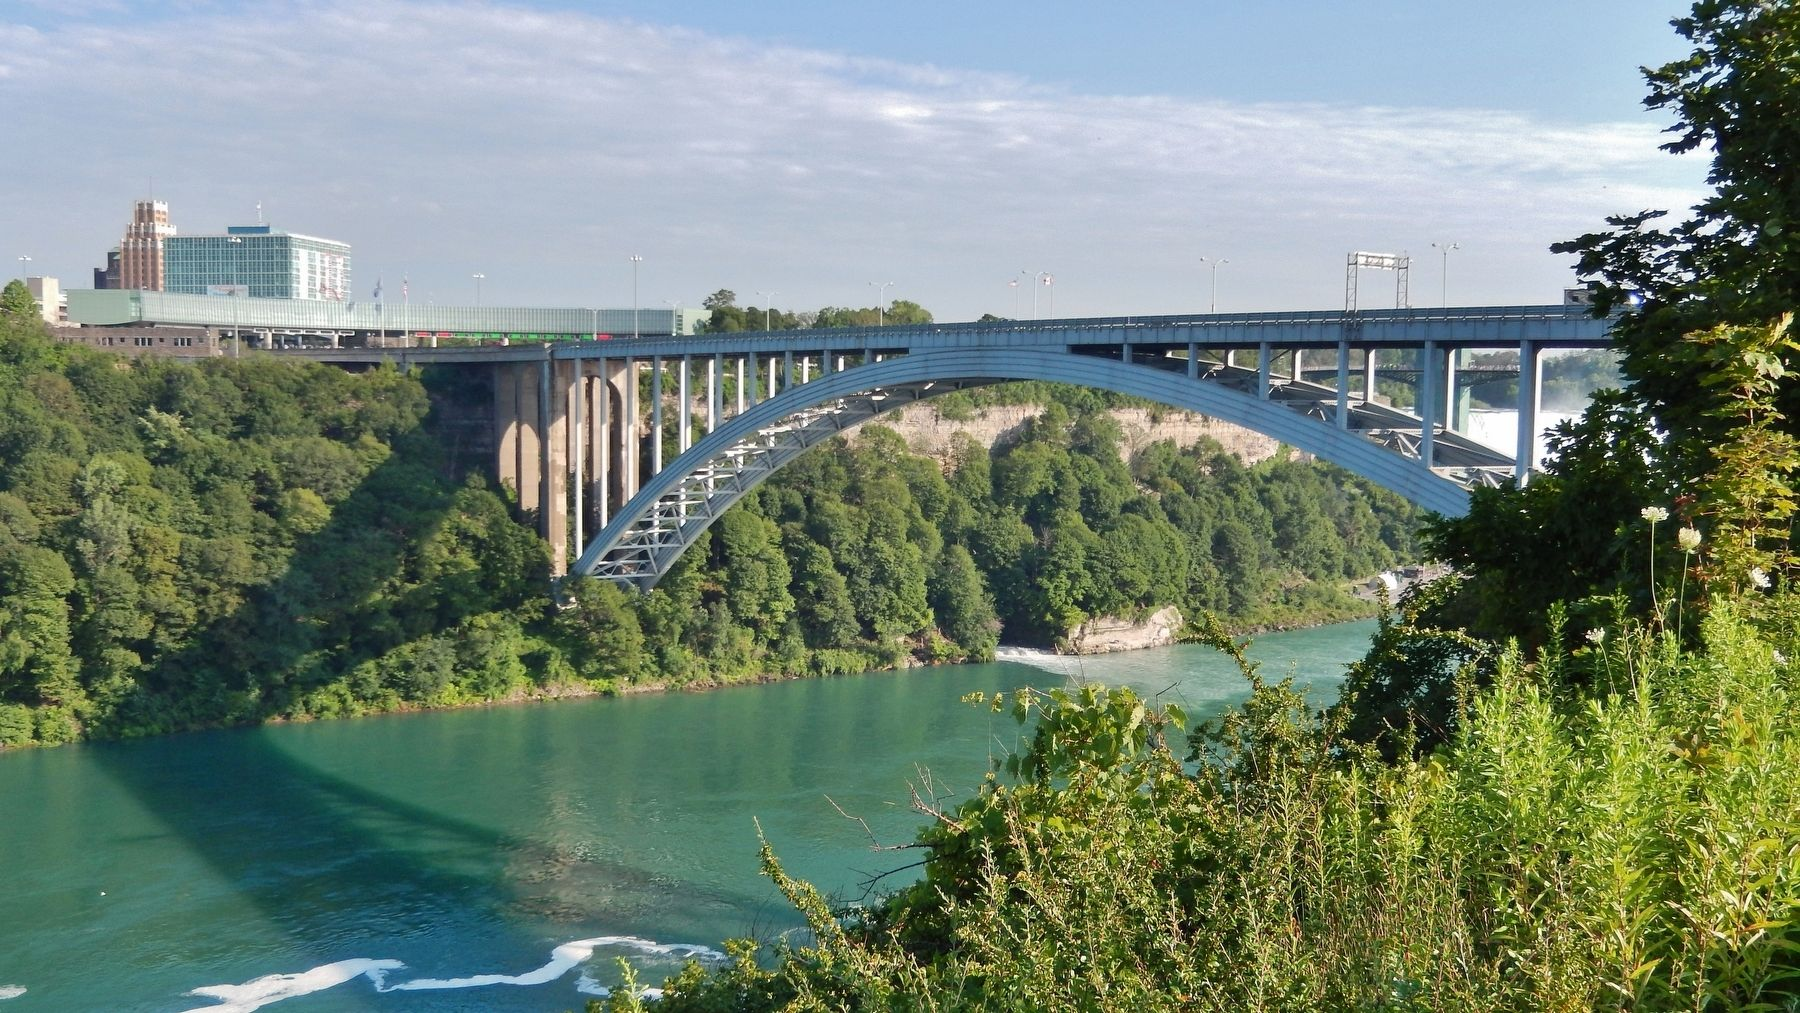 International Rainbow Bridge & Niagara River (<i>north side</i>) image. Click for full size.